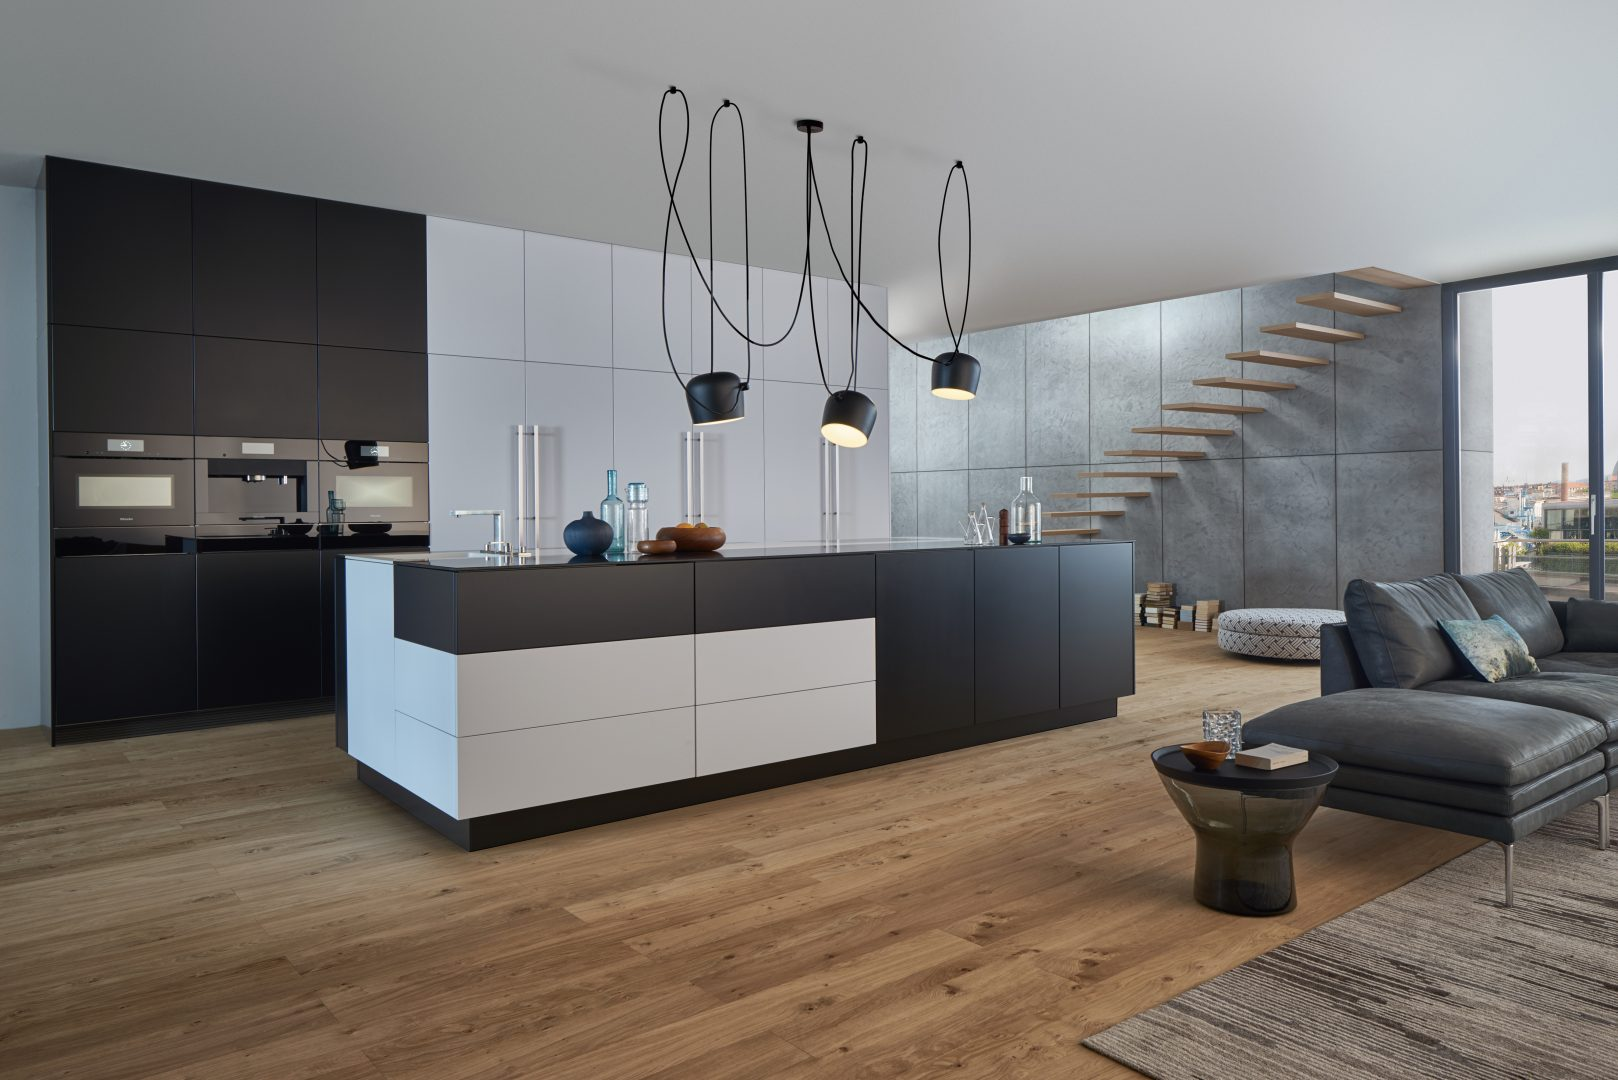 A calm kitchen architecture open to the living area as well as perfect functional details – these are the characteristics of a LEICHT kitchen. A homely atmosphere is the result of an interchange with open spaces and the brilliant combination of materials: elegant, matt lacquered surfaces contrast with finely structured genuine wood.